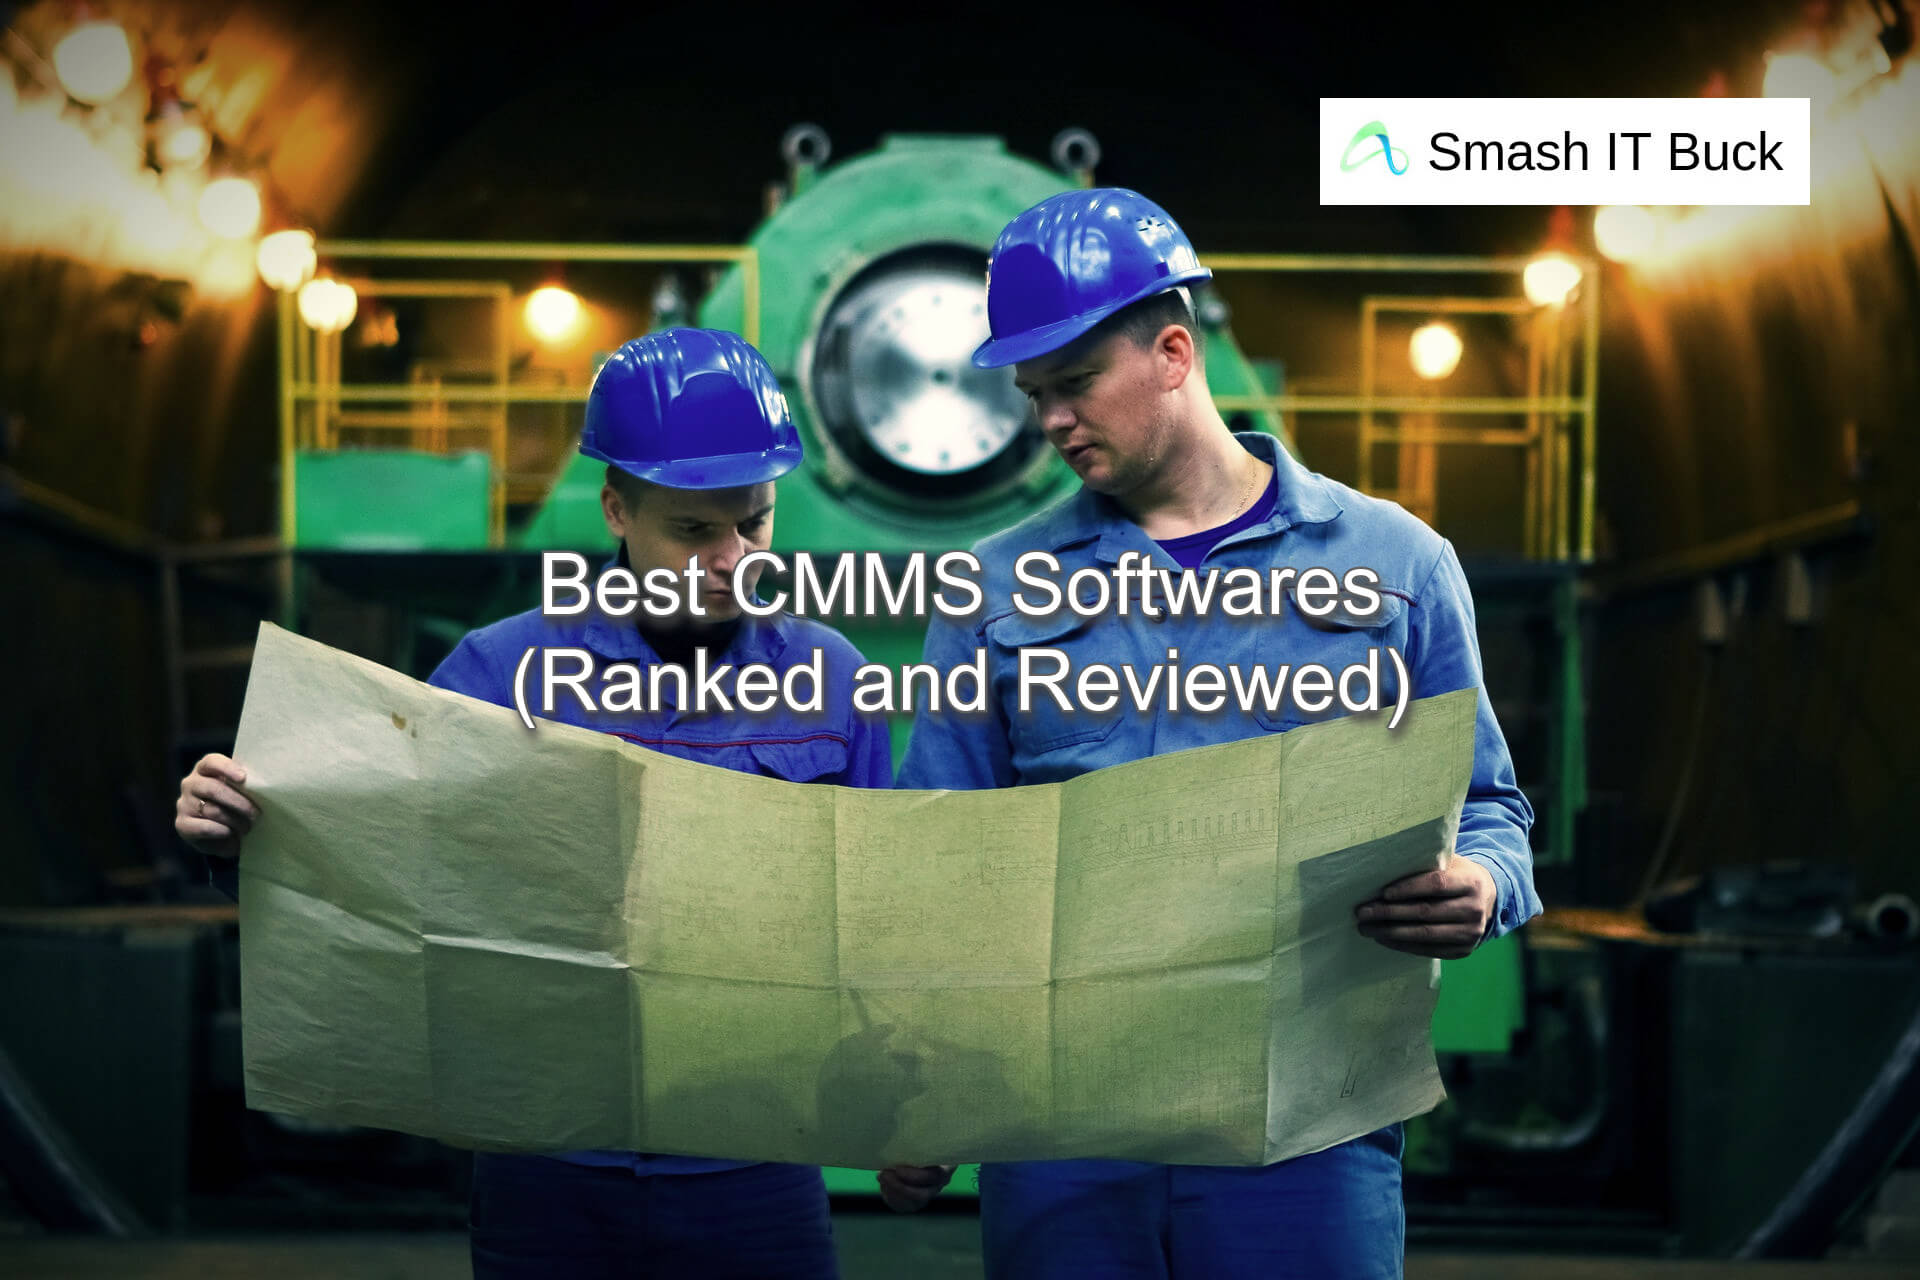 Best CMMS Software in 2021 (Complete Guide)